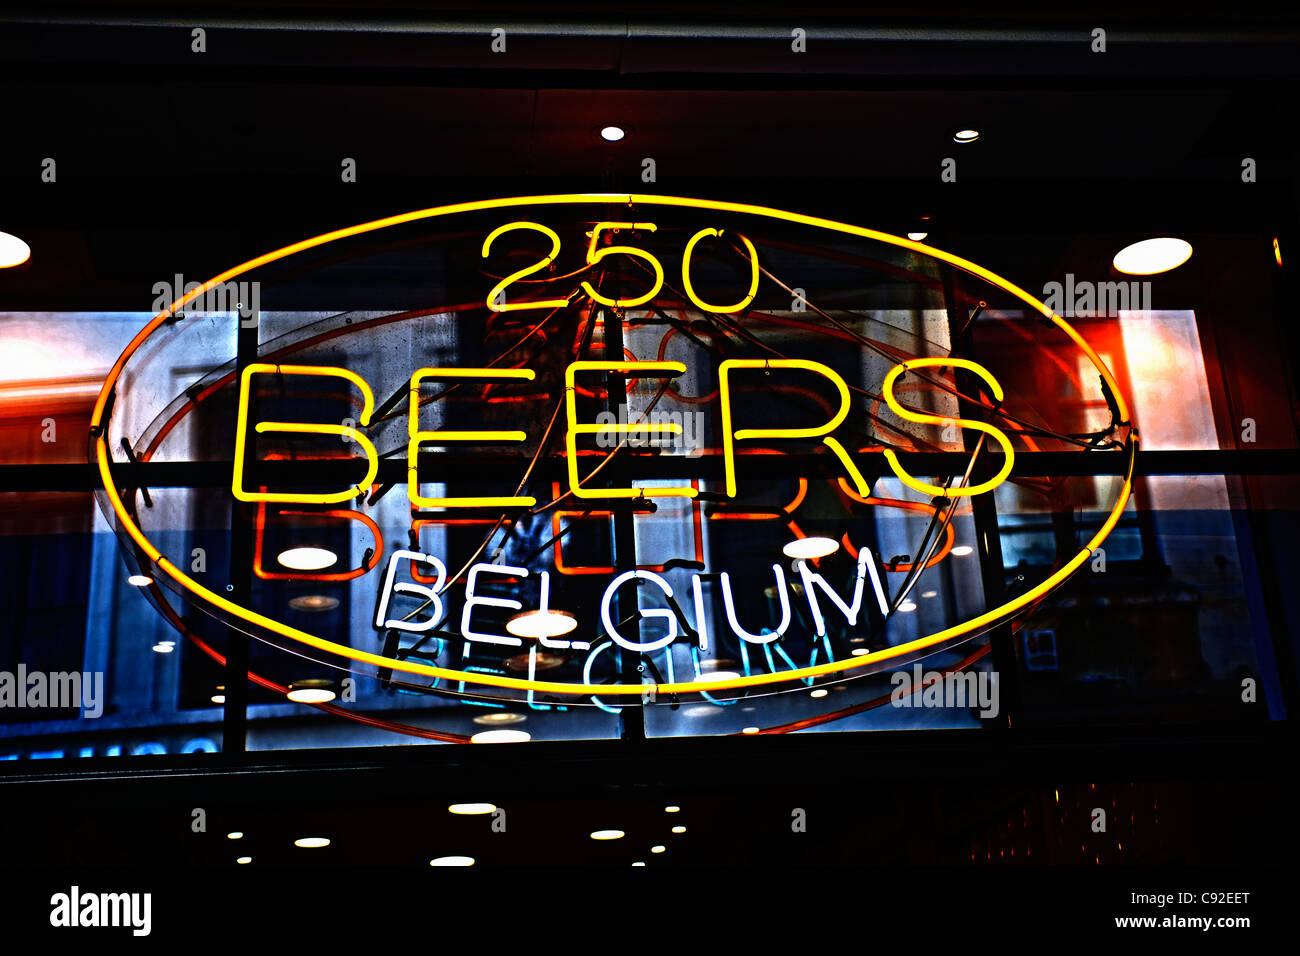 Neon sign advertising Belgian beer - Stock Image